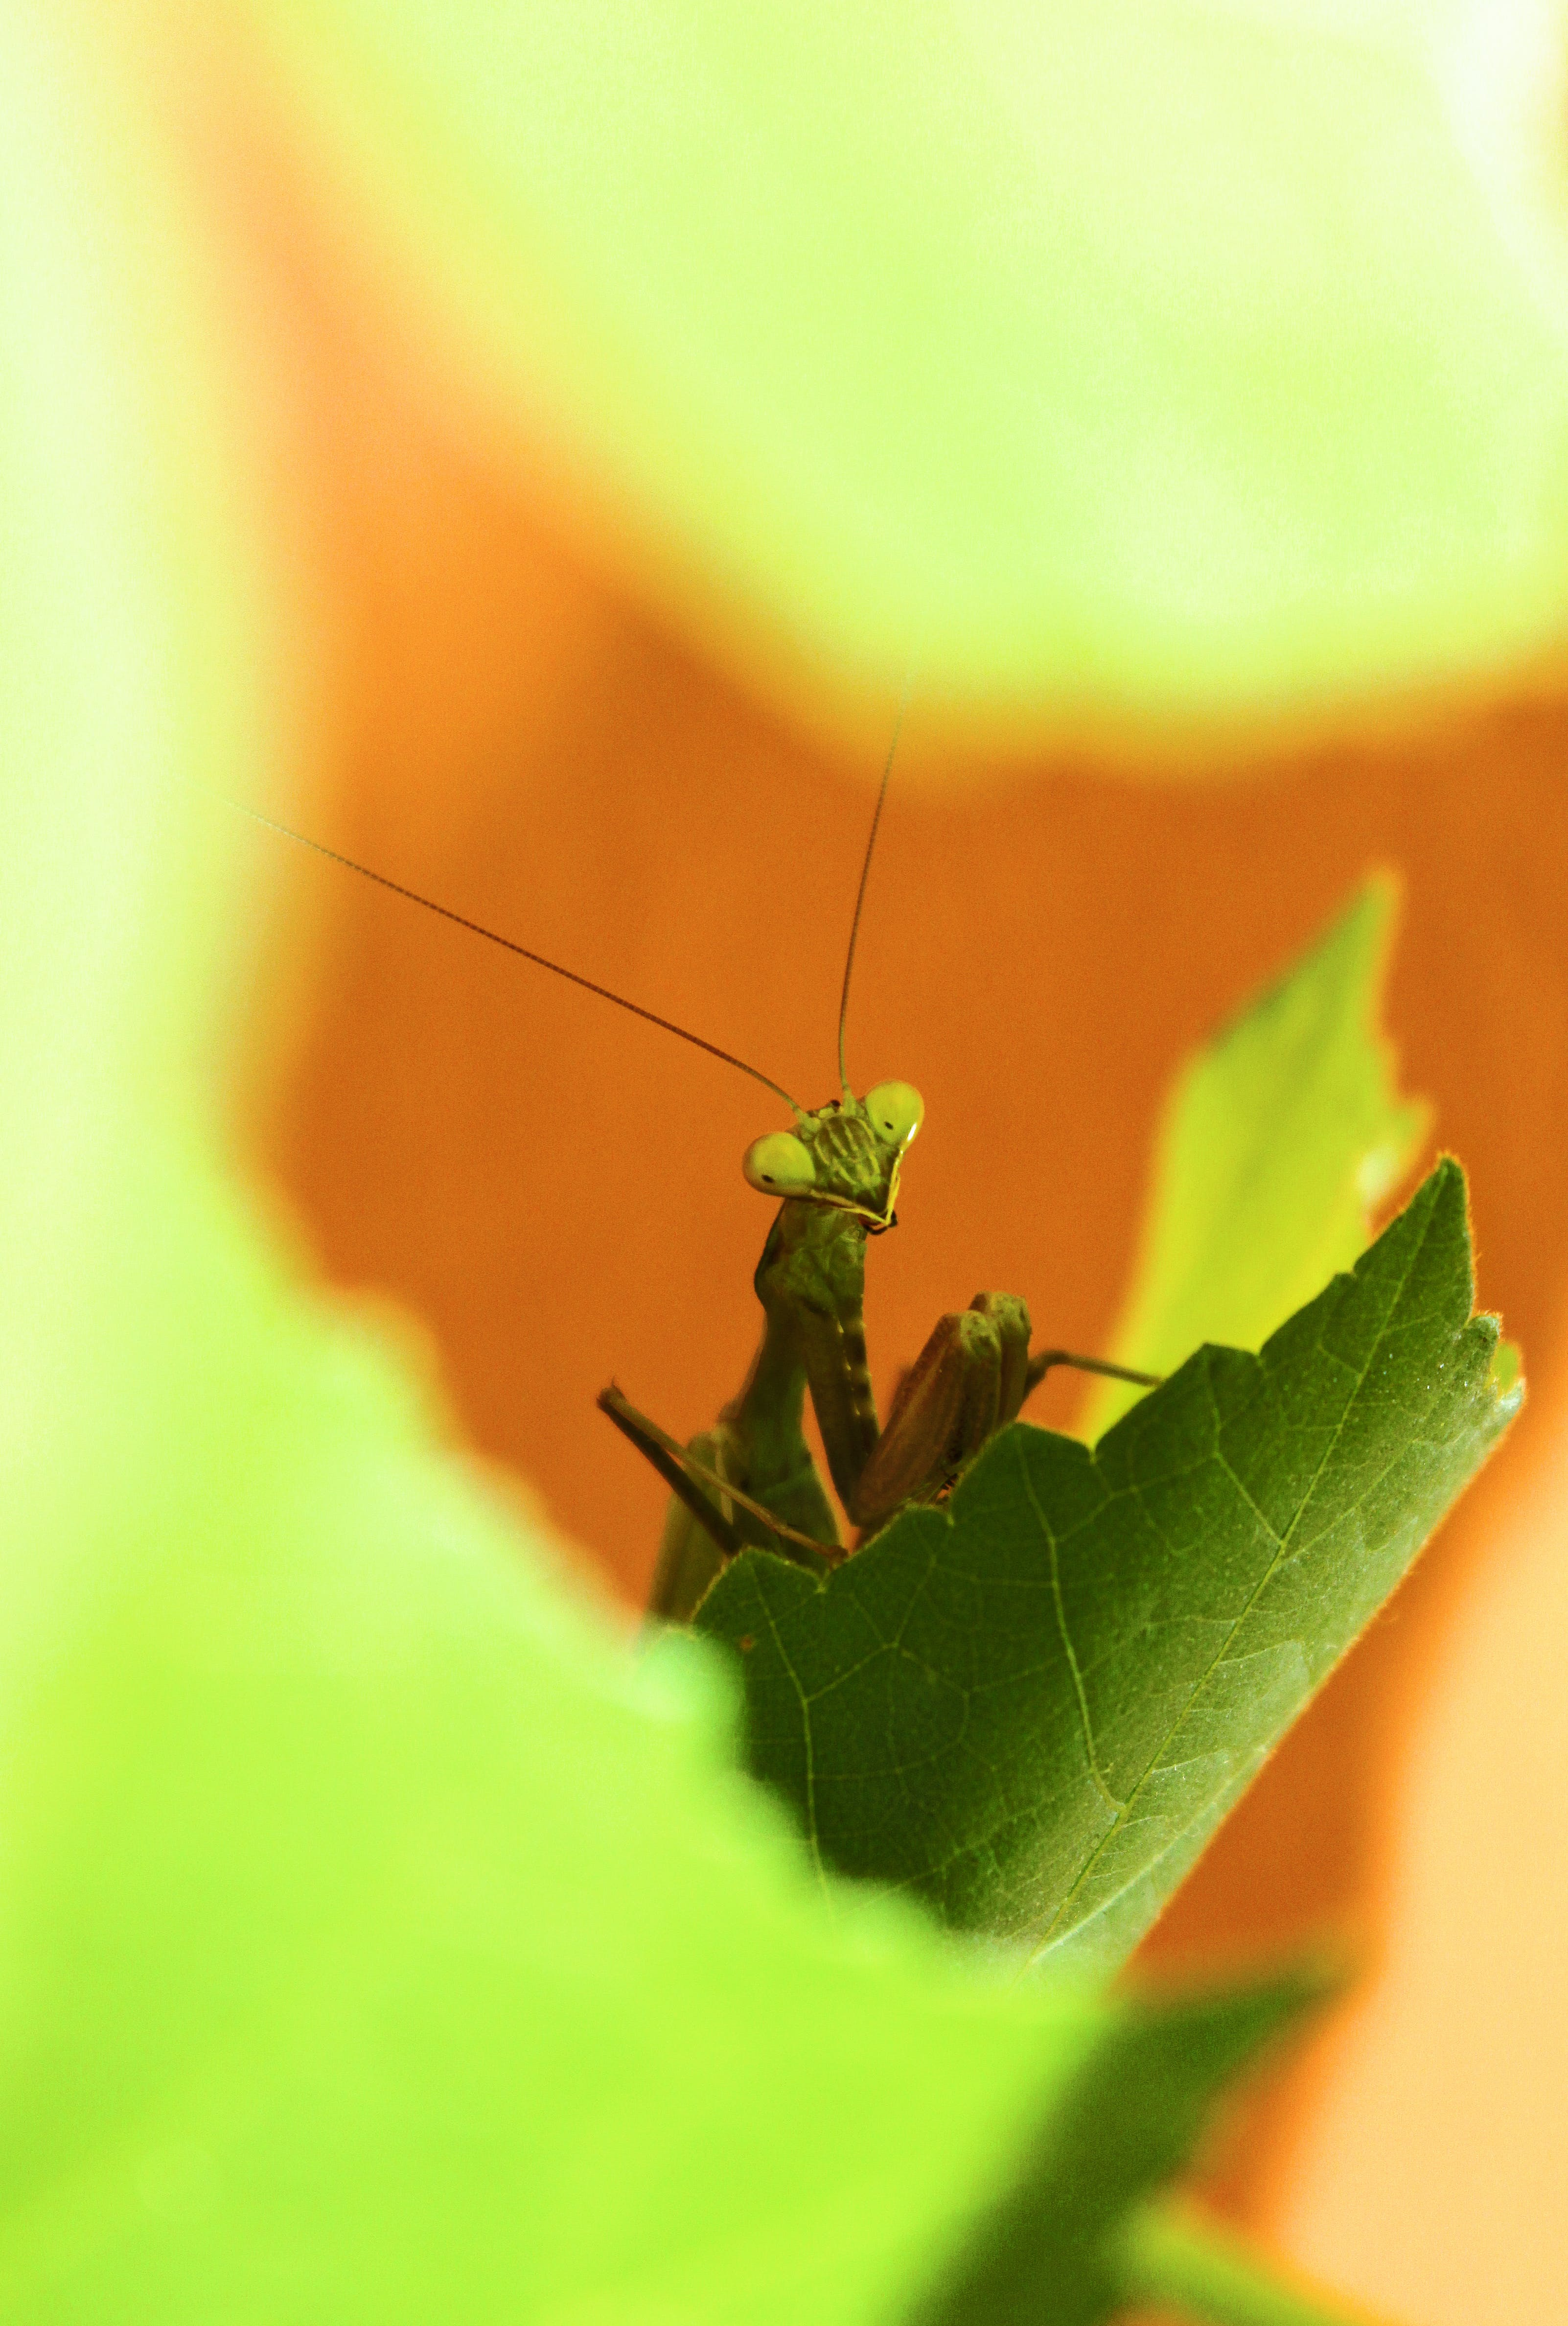 Free stock photo of green, insect, leaves, mantis